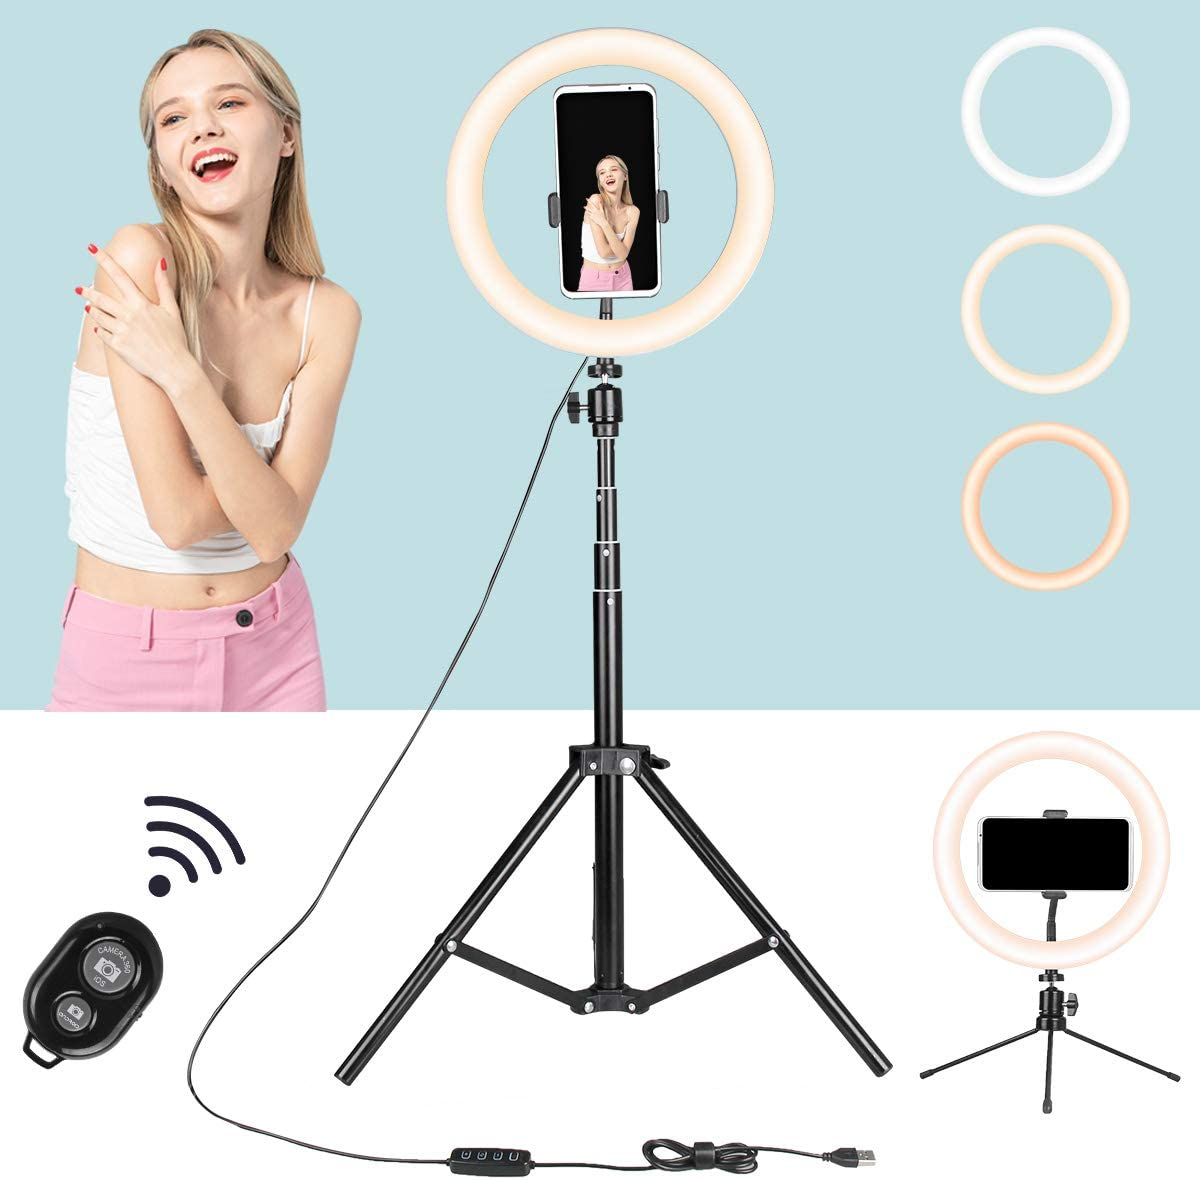 """LED Selfie Ring Light 10"""" with Adjustable Tripod Stand & Phone Holder for YouTube Video, TIK Tok and Makeup, Premium Dimmable LED Circle Lights Including Remote by DAKASON"""